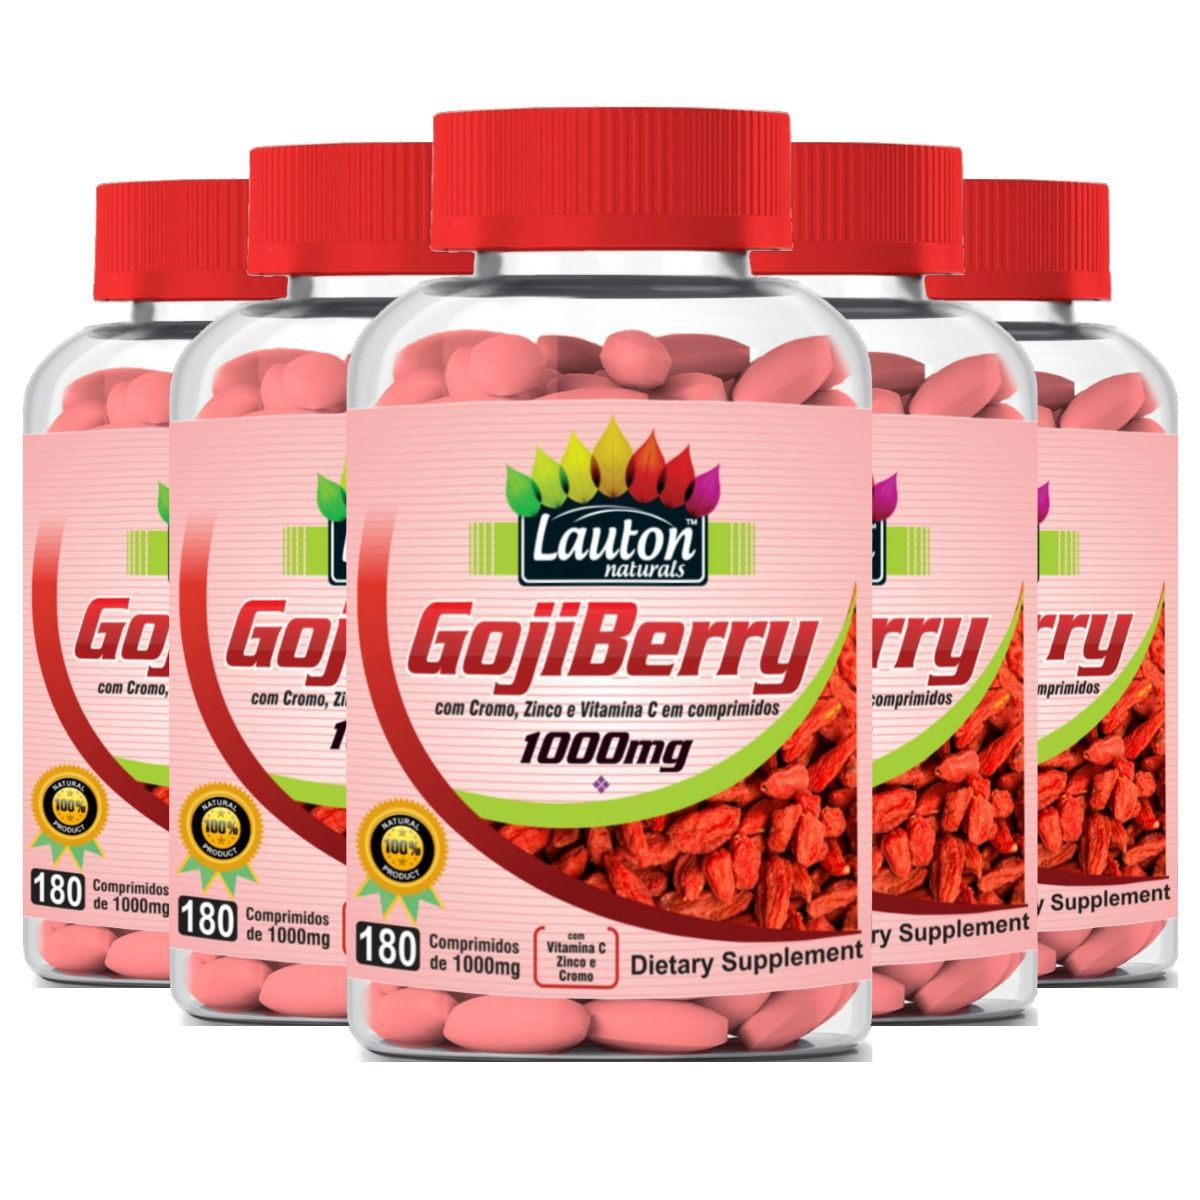 Kit 5 Goji Berry Lauton Nutrition 180 Comprimidos 1000mg